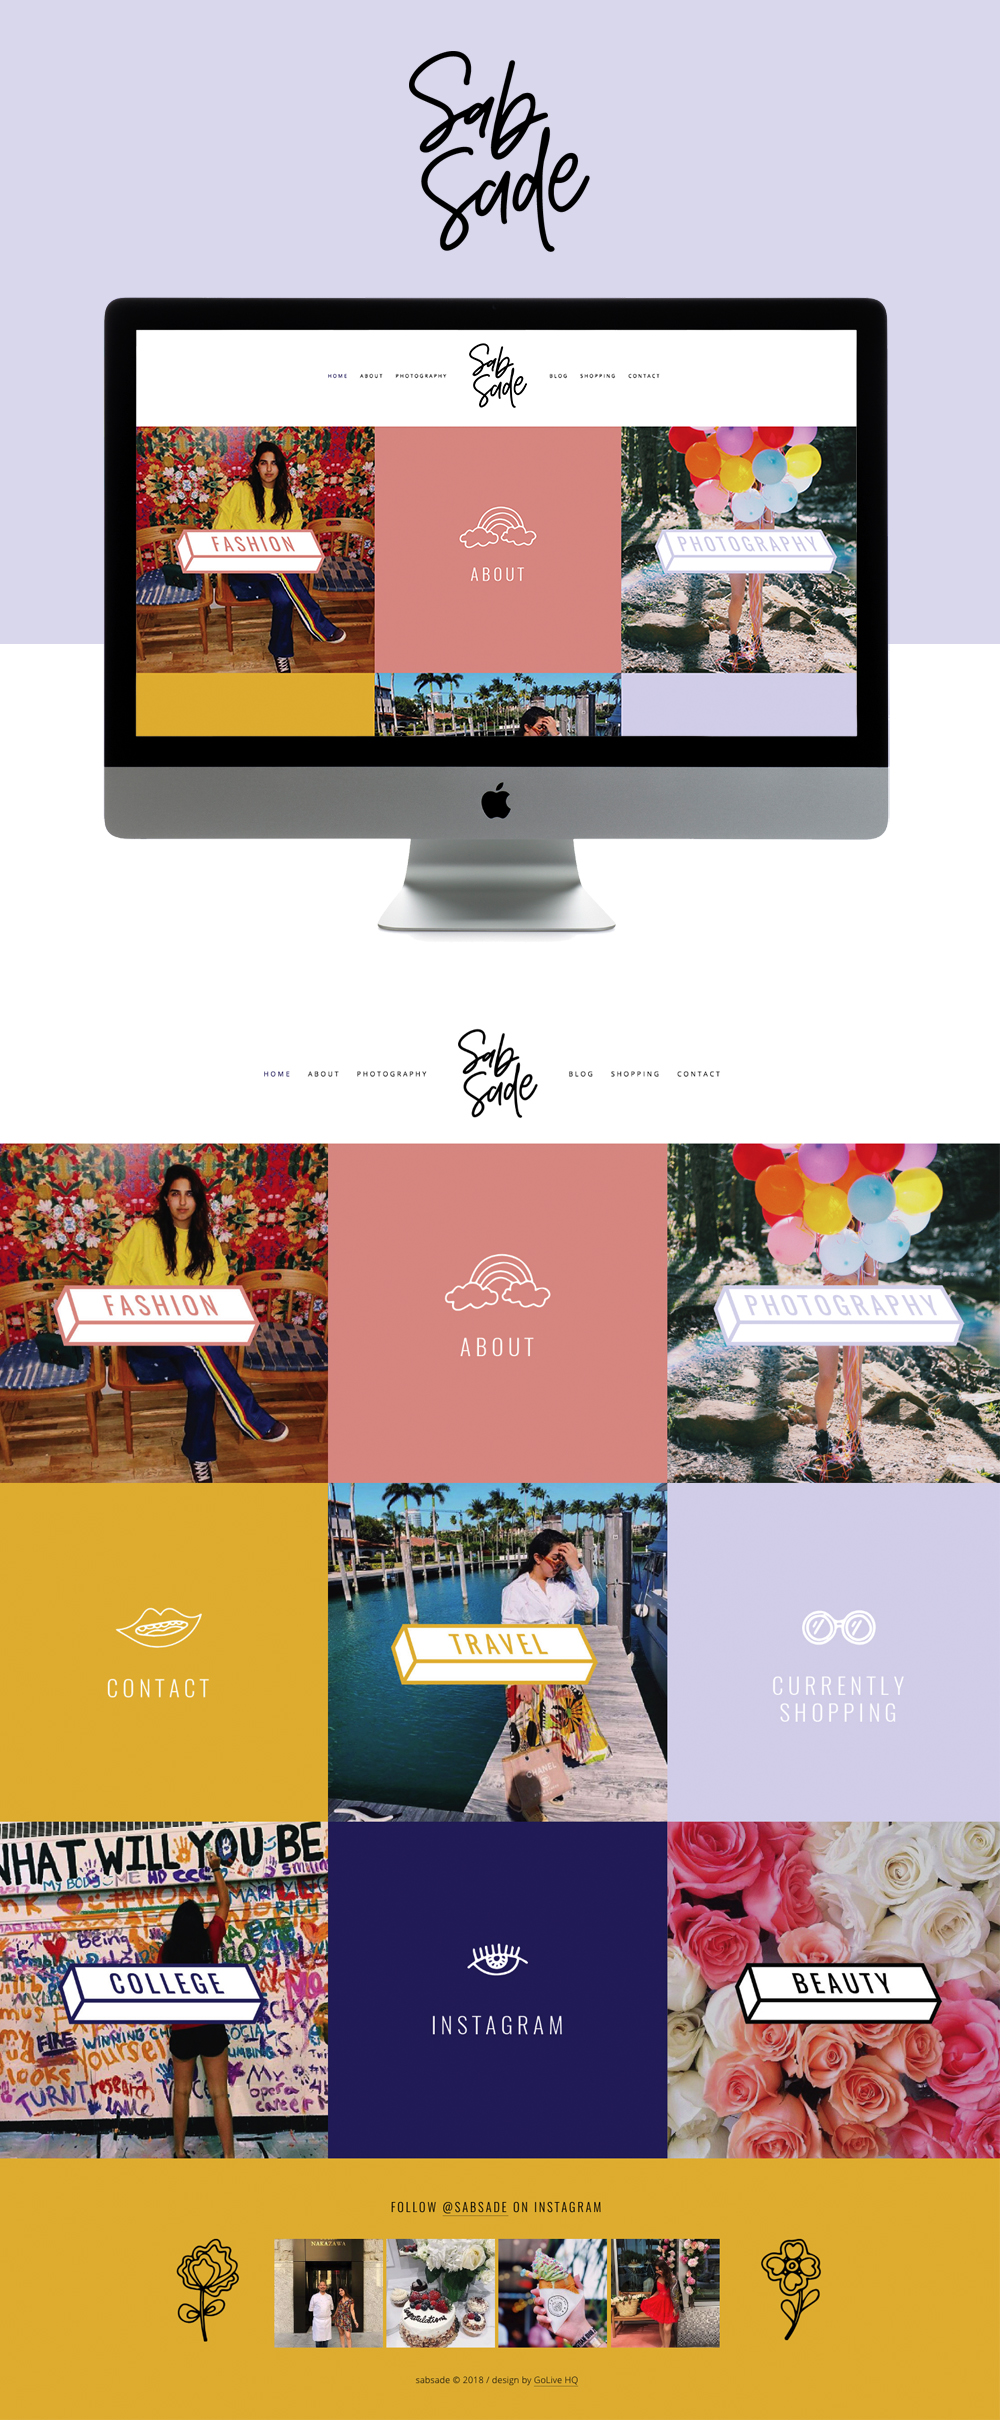 Colorful, Quirky, and Luxurious Website Design for Fashion Blogger | Site Design by Go Live HQ